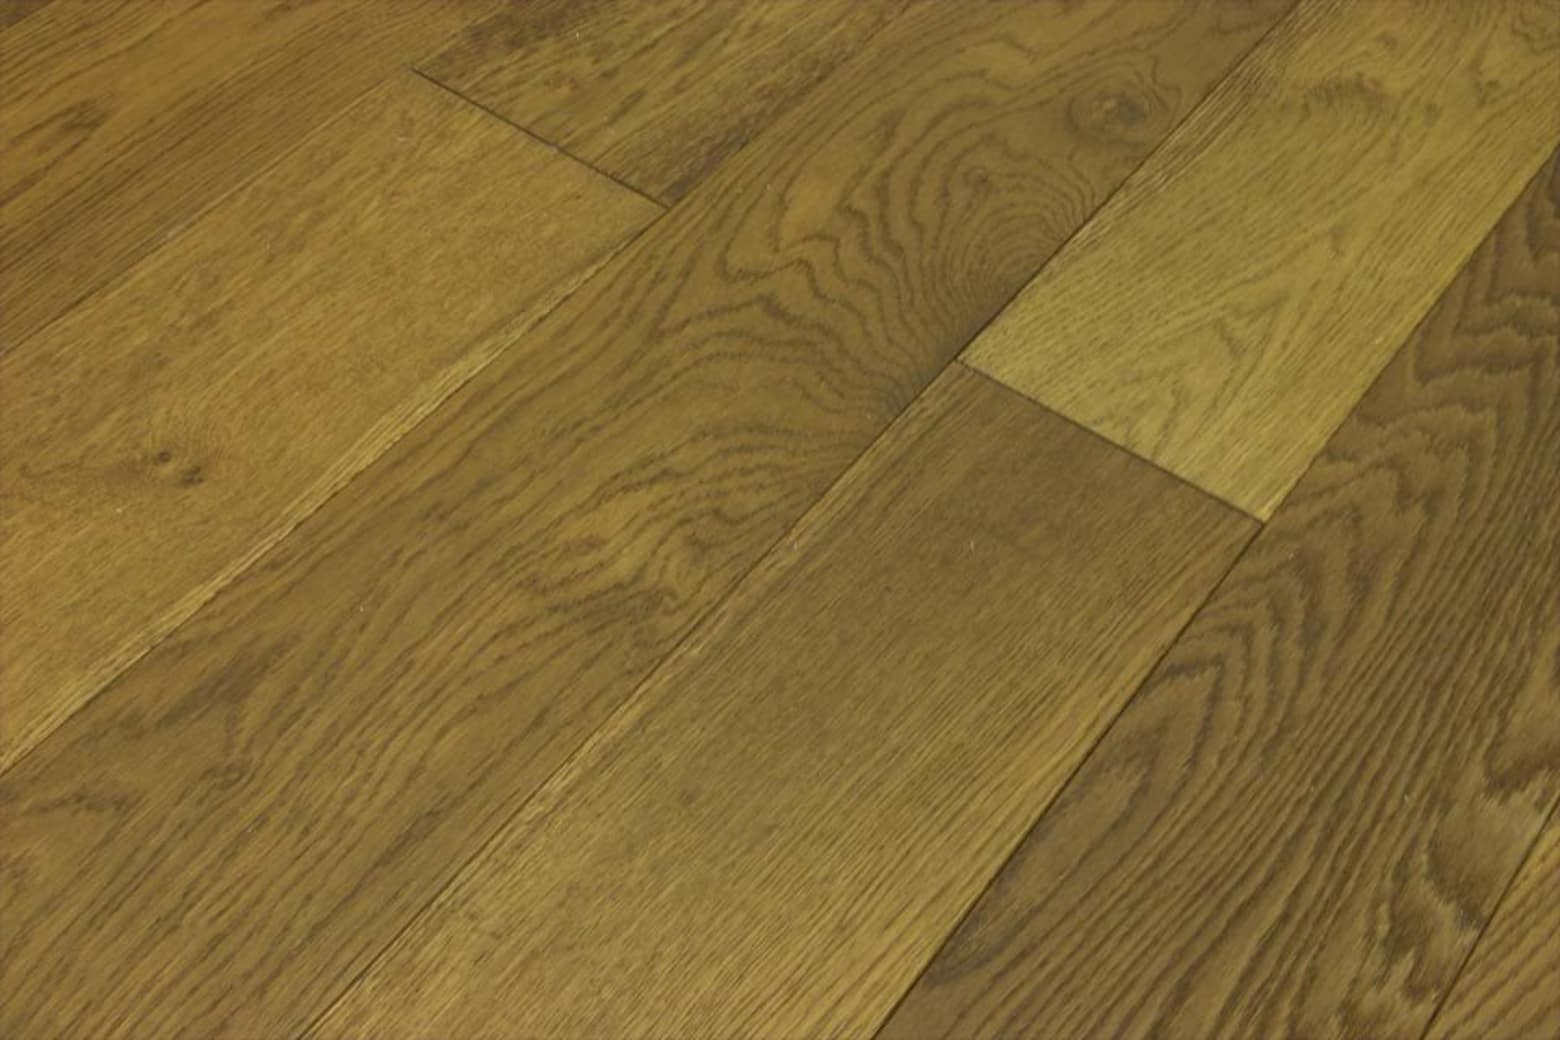 Natural Engineered Flooring Oak Smoked Stained Brushed UV Oiled 14/3mm By 150mm By 1900mm